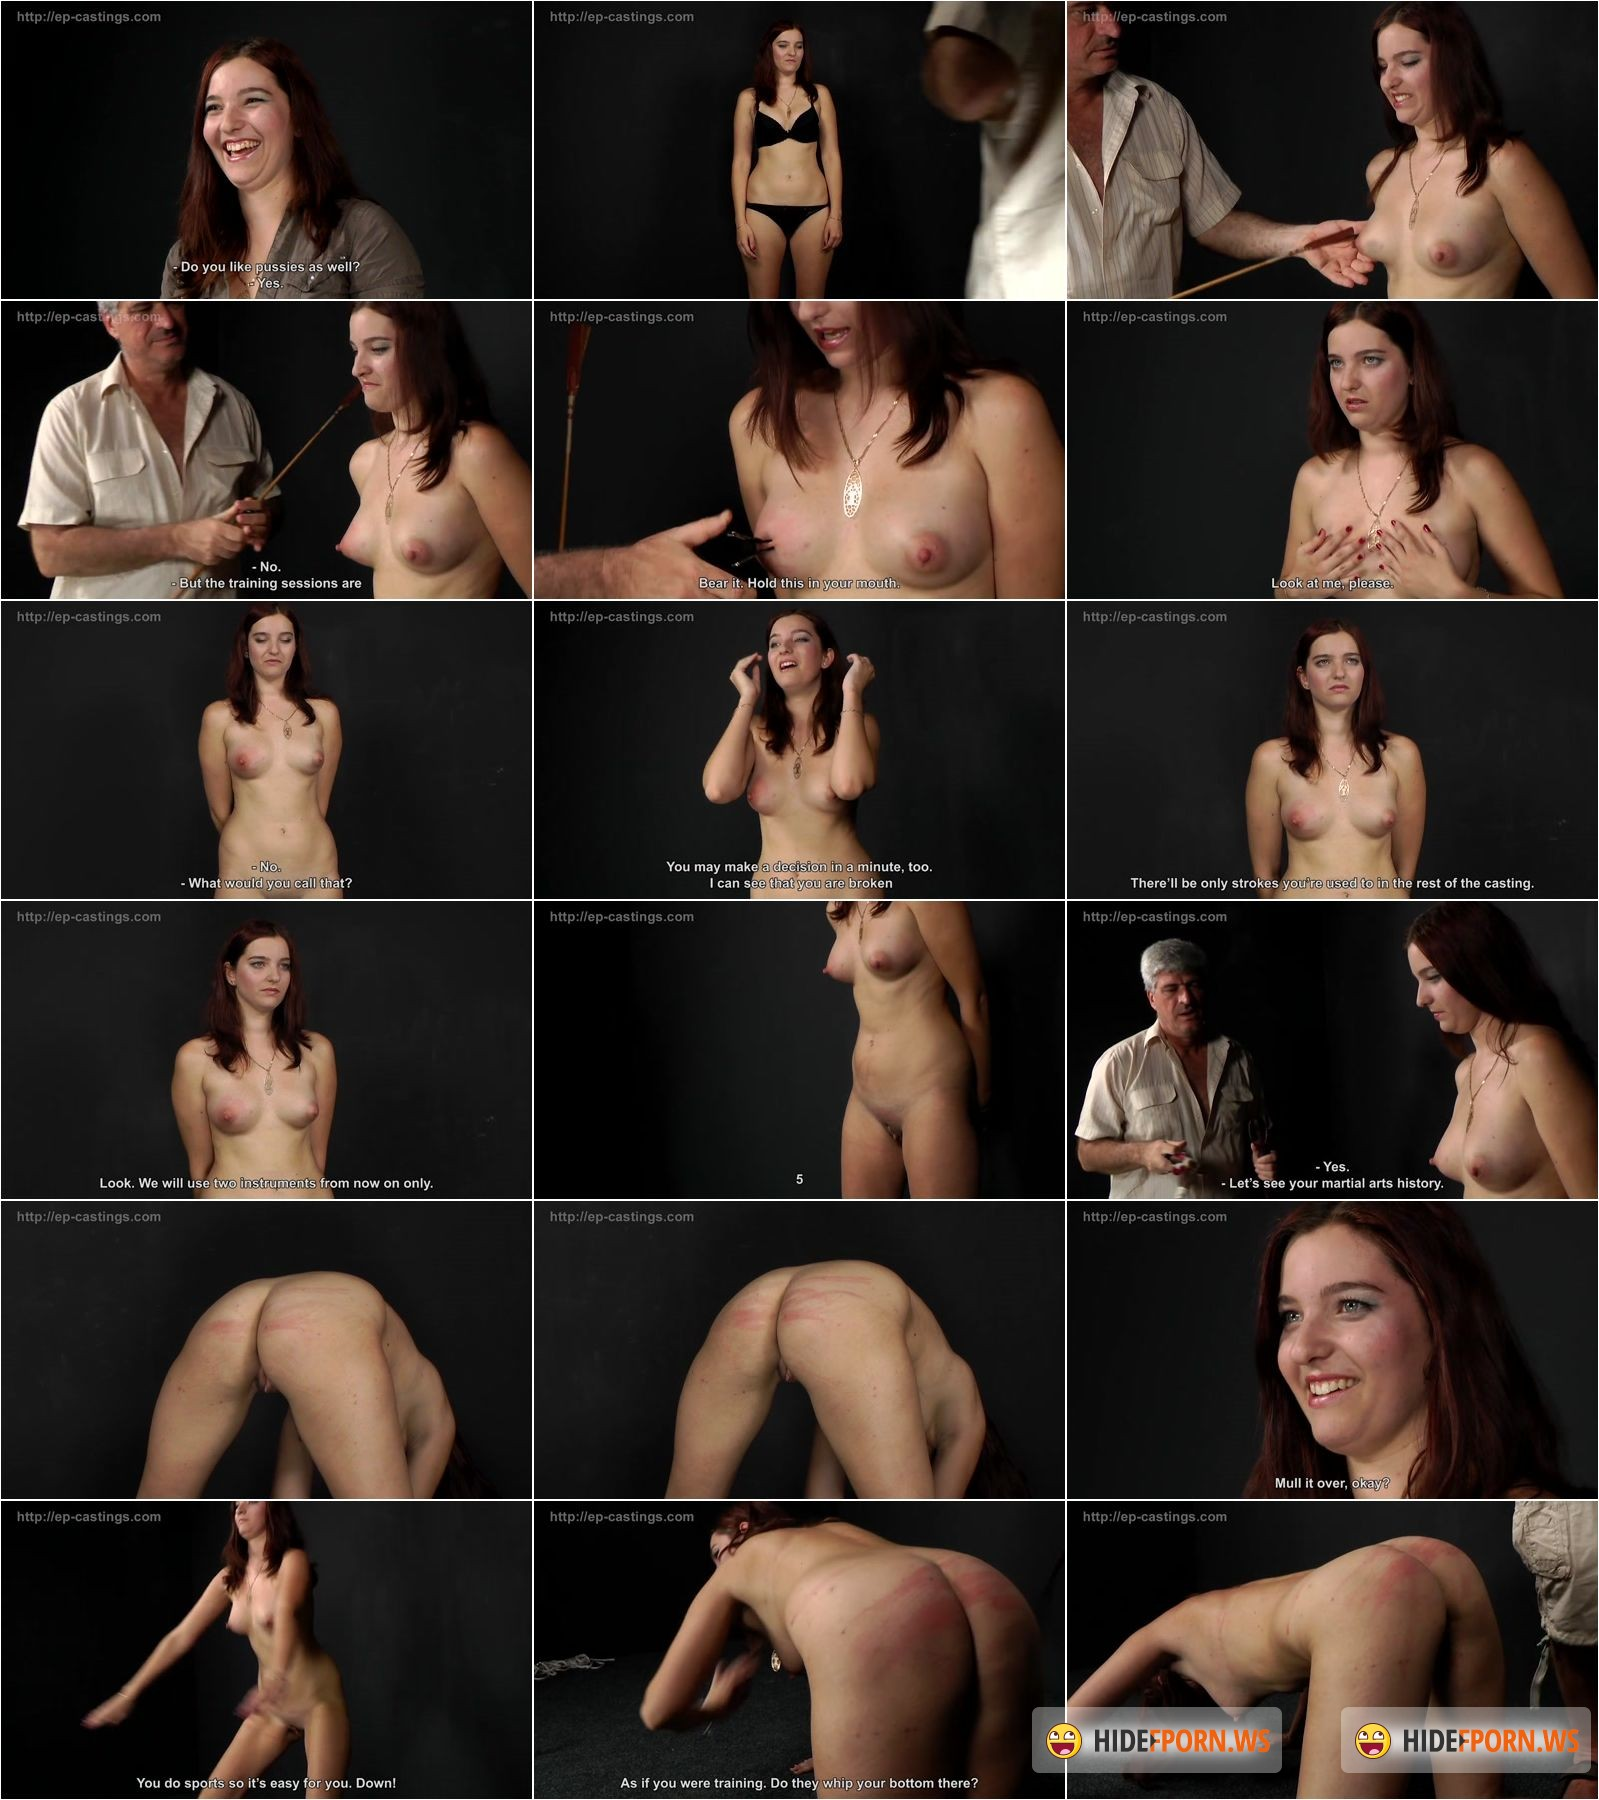 porno-video-bdsm-kasting